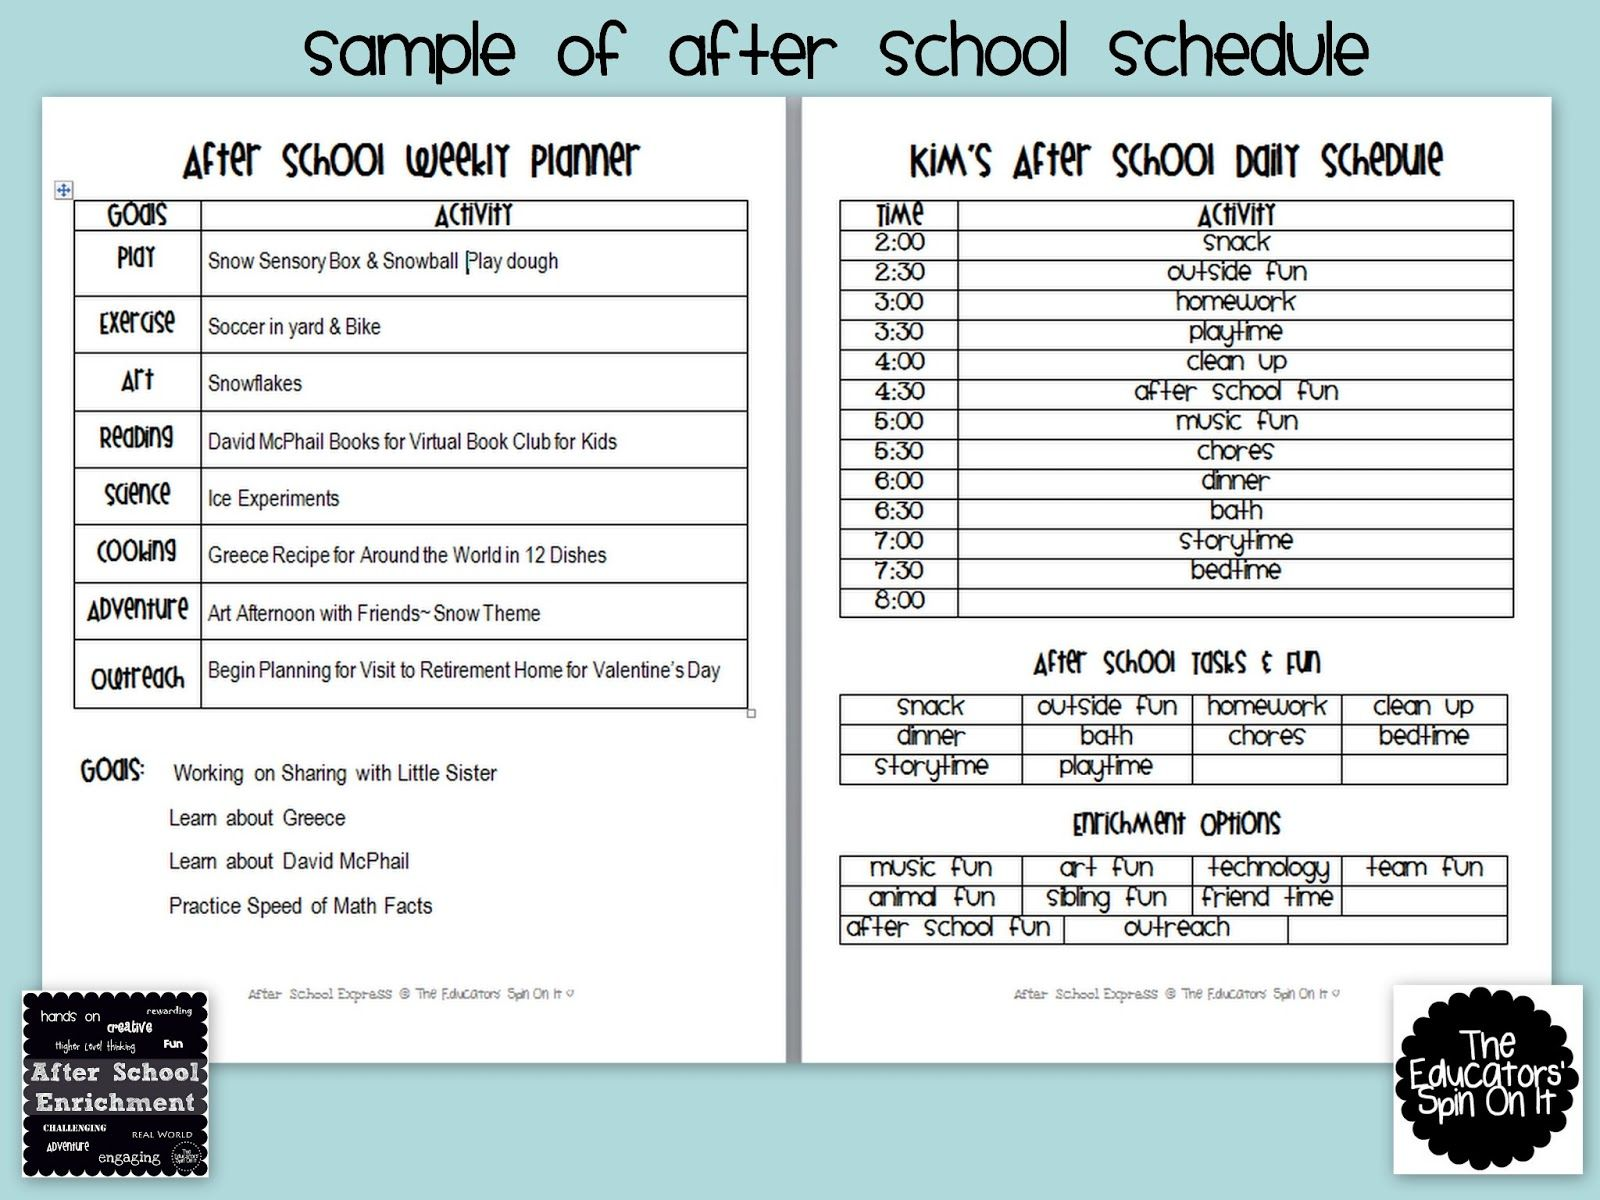 After School Weekly Planner